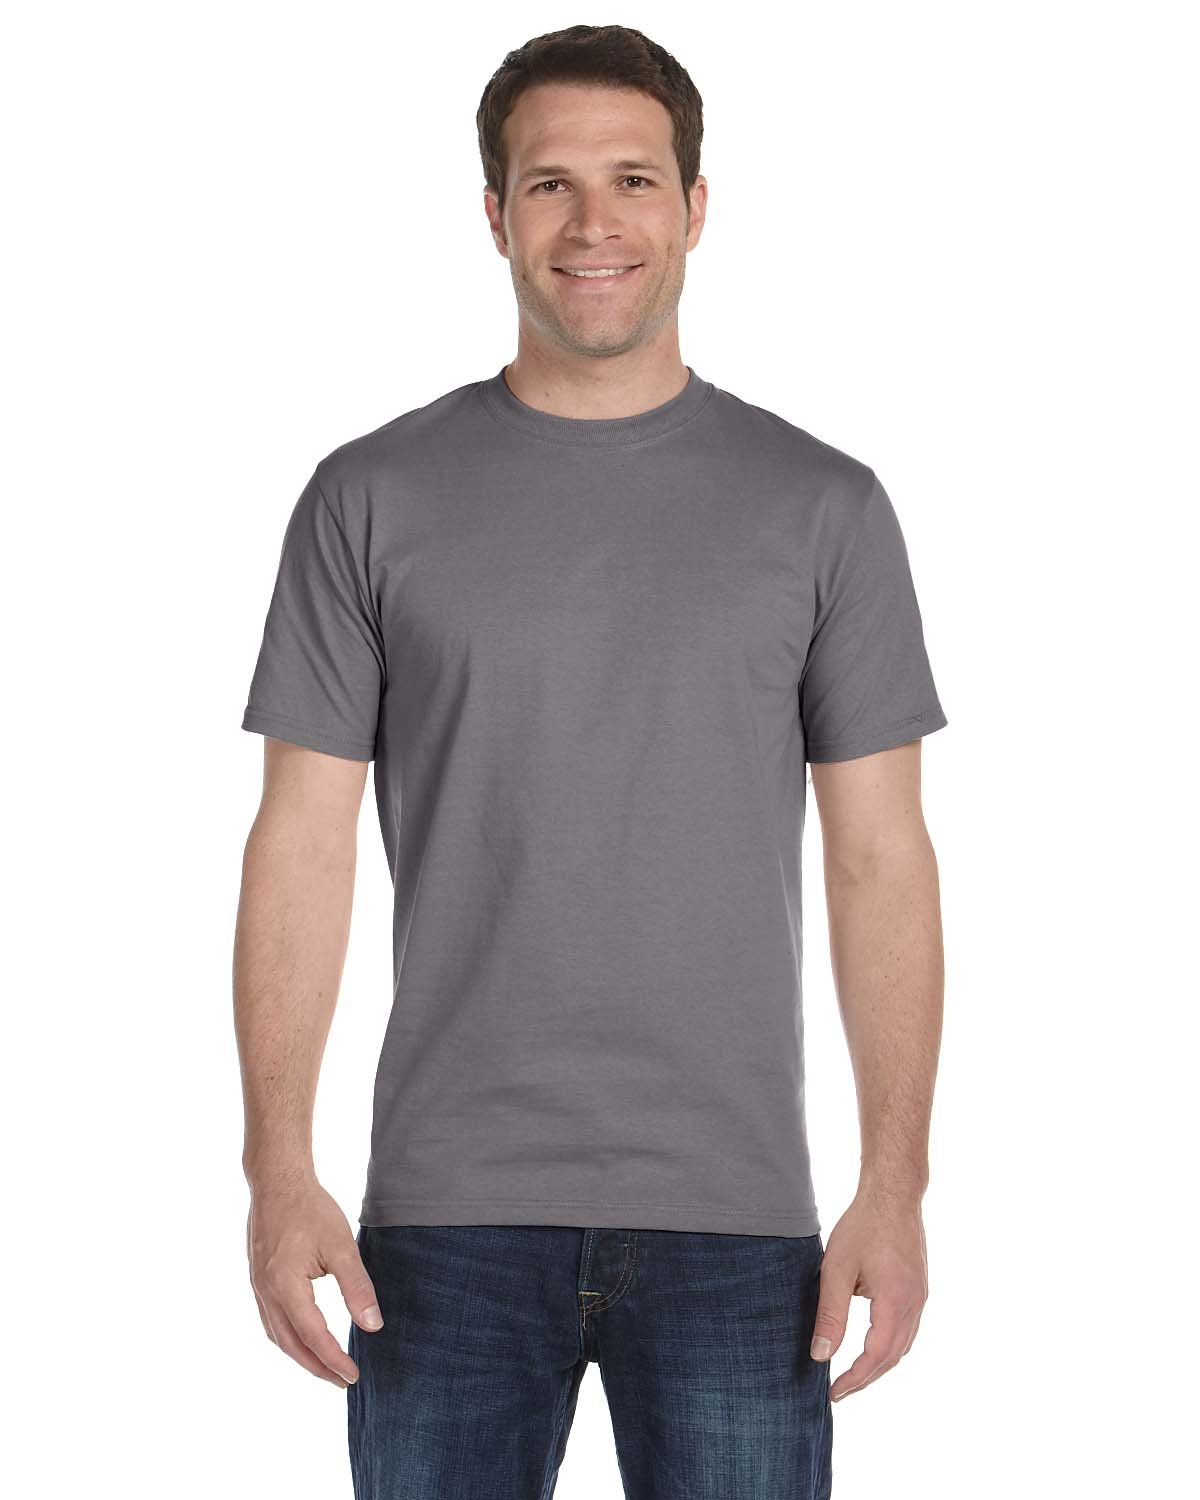 Hanes Men's Short Sleeve Beefy T-Shirt (Graphite, XX-Large) by Hanes